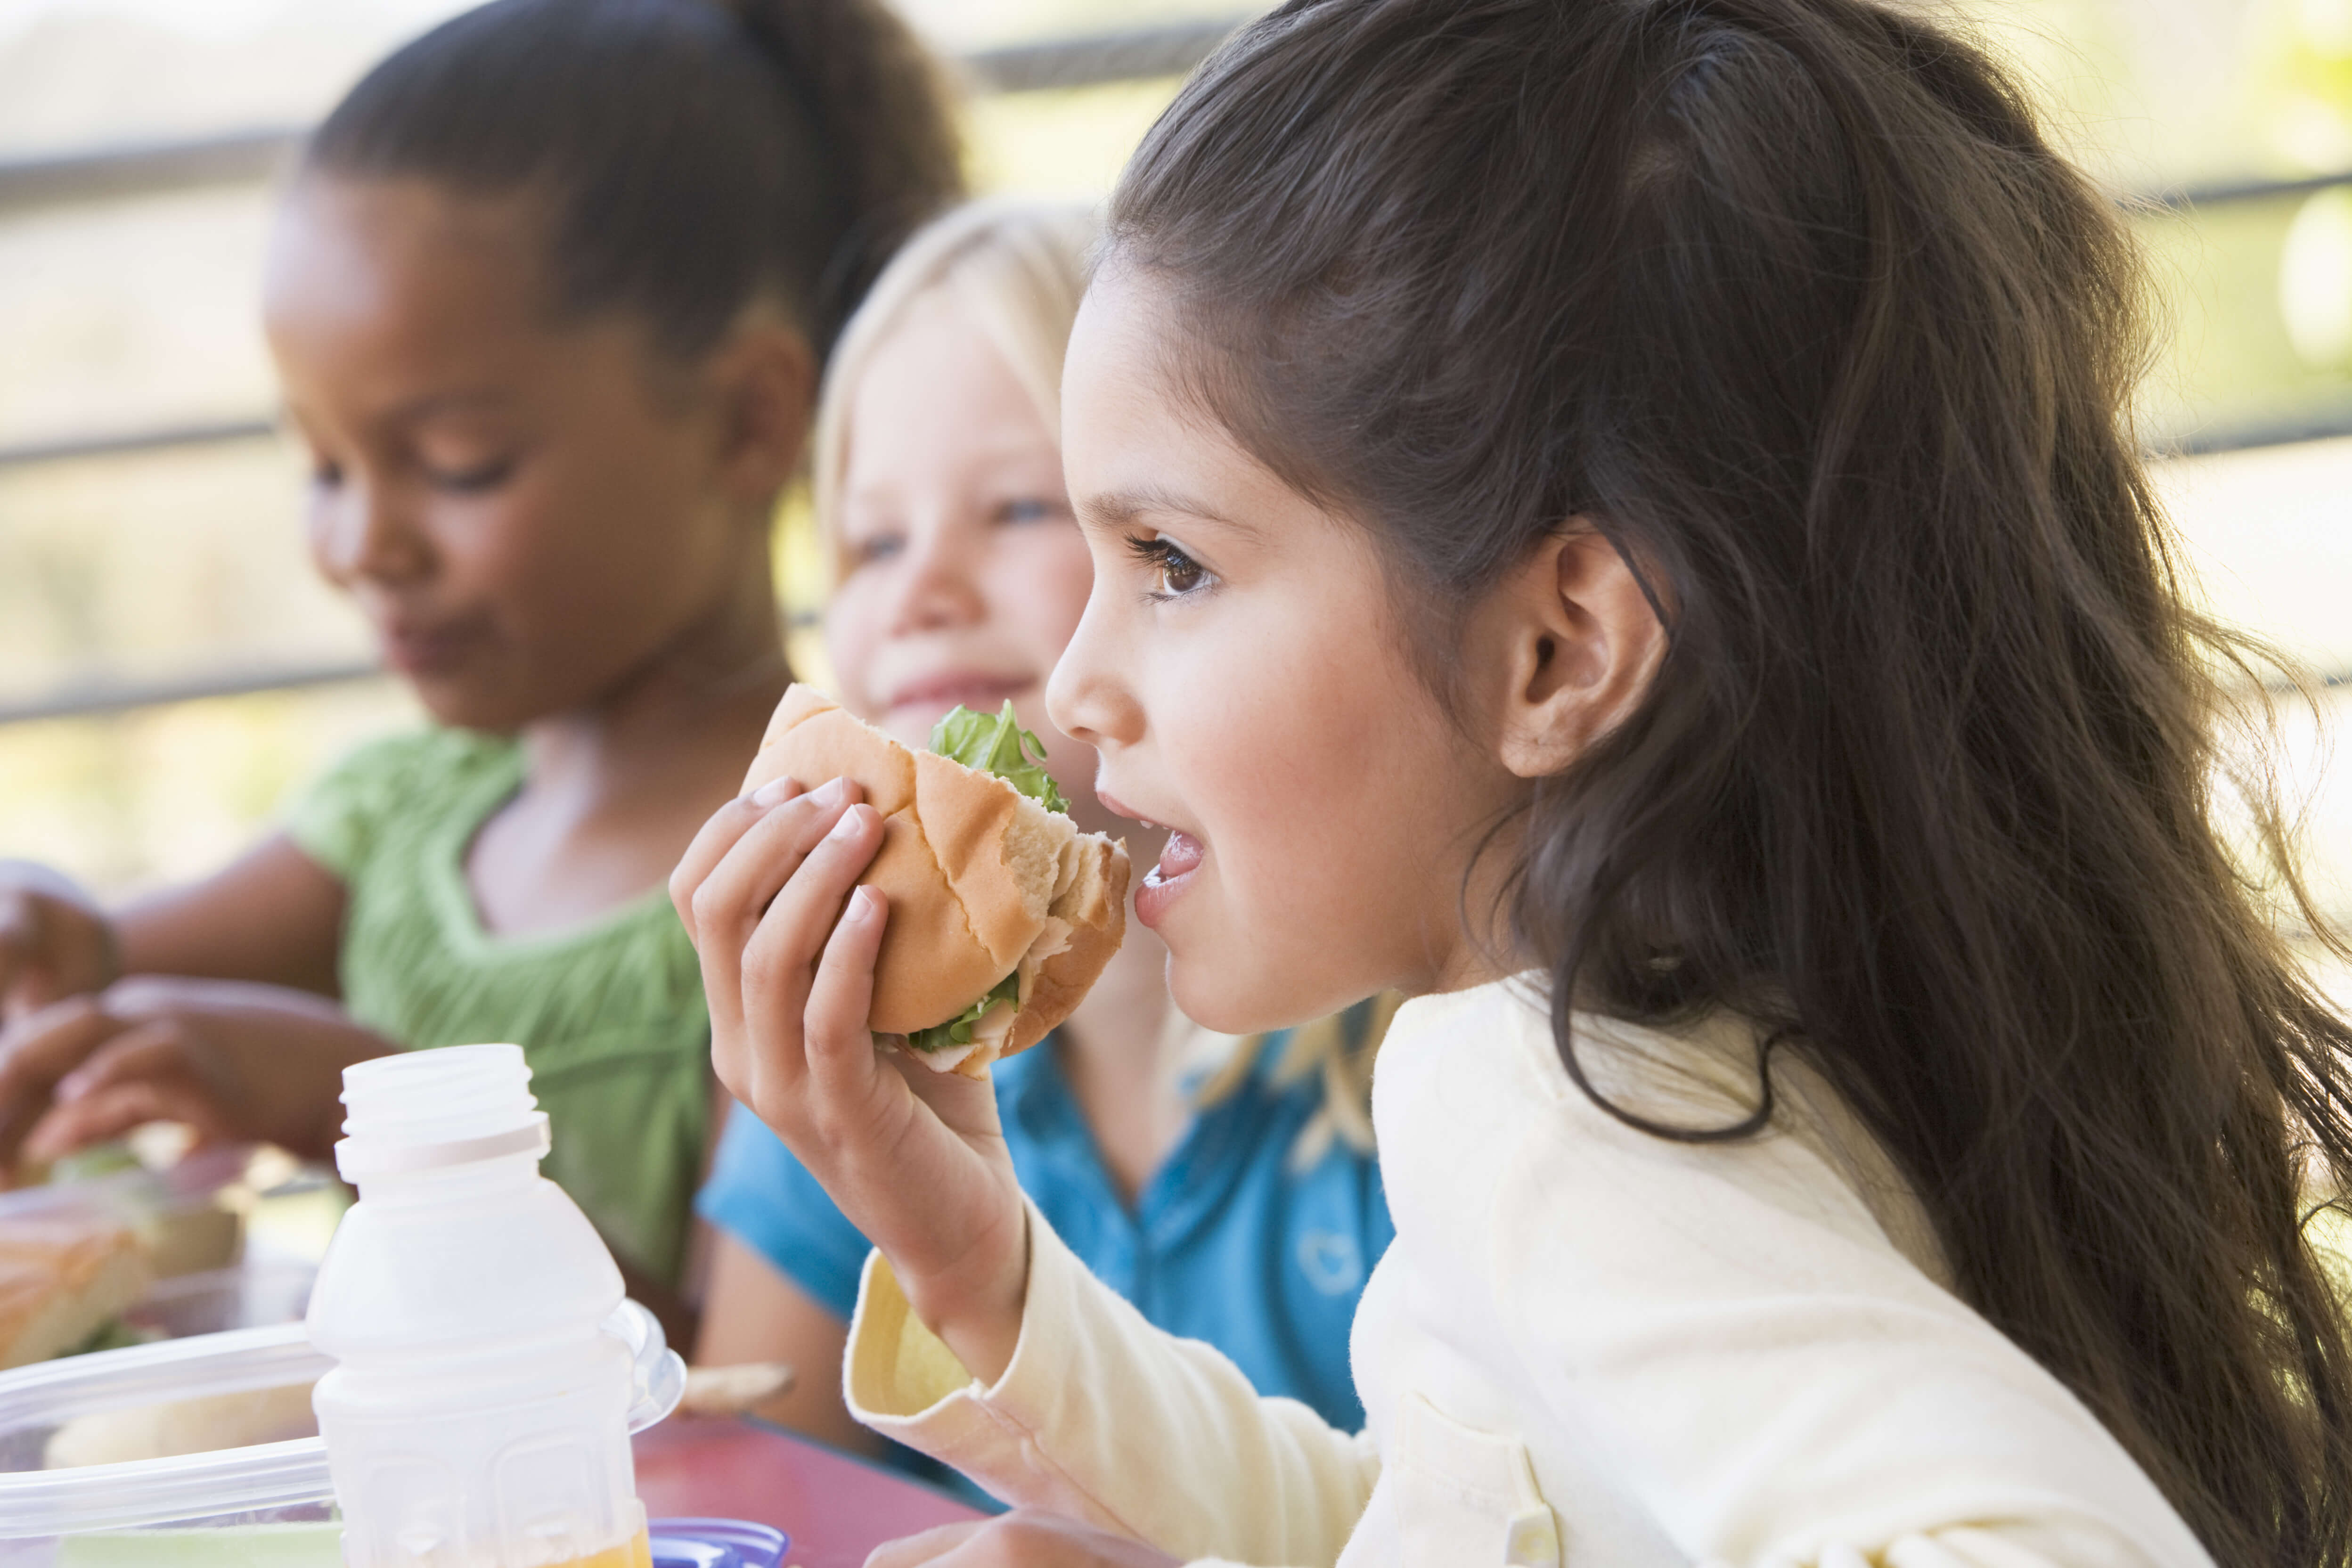 99% of UK School Lunch Programs Could 'Save Lives' By Removing Process Meat